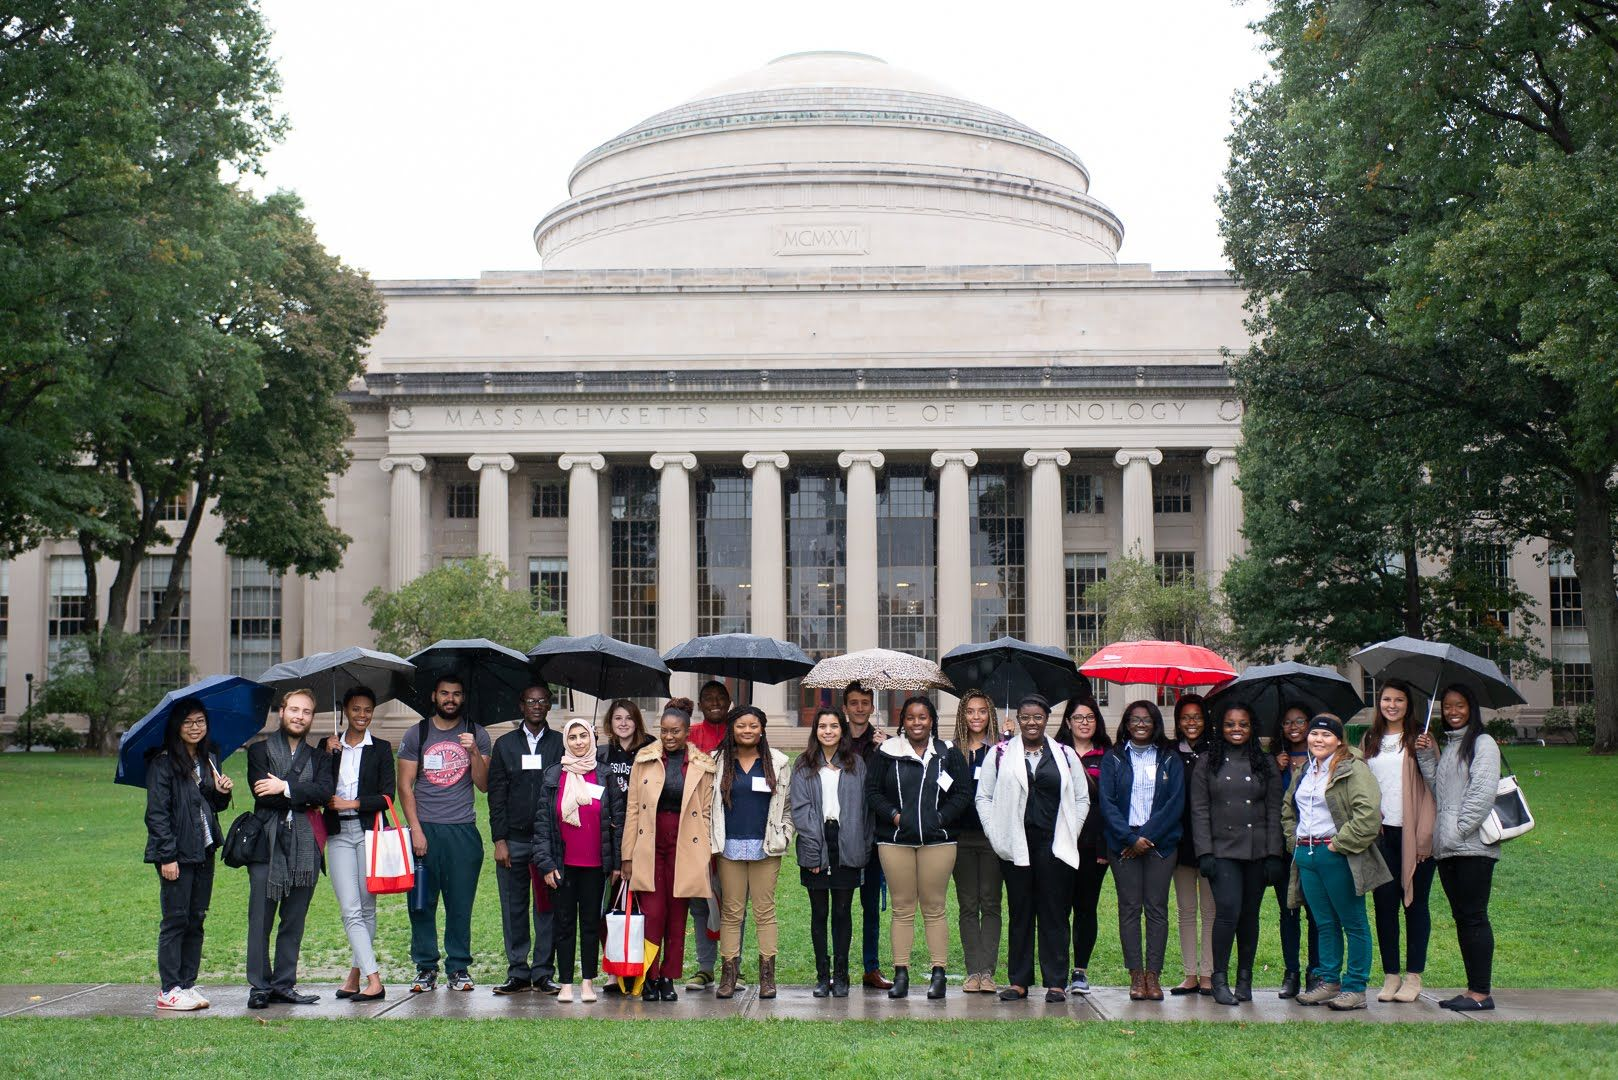 A group of students stands in front of the MIT dome.